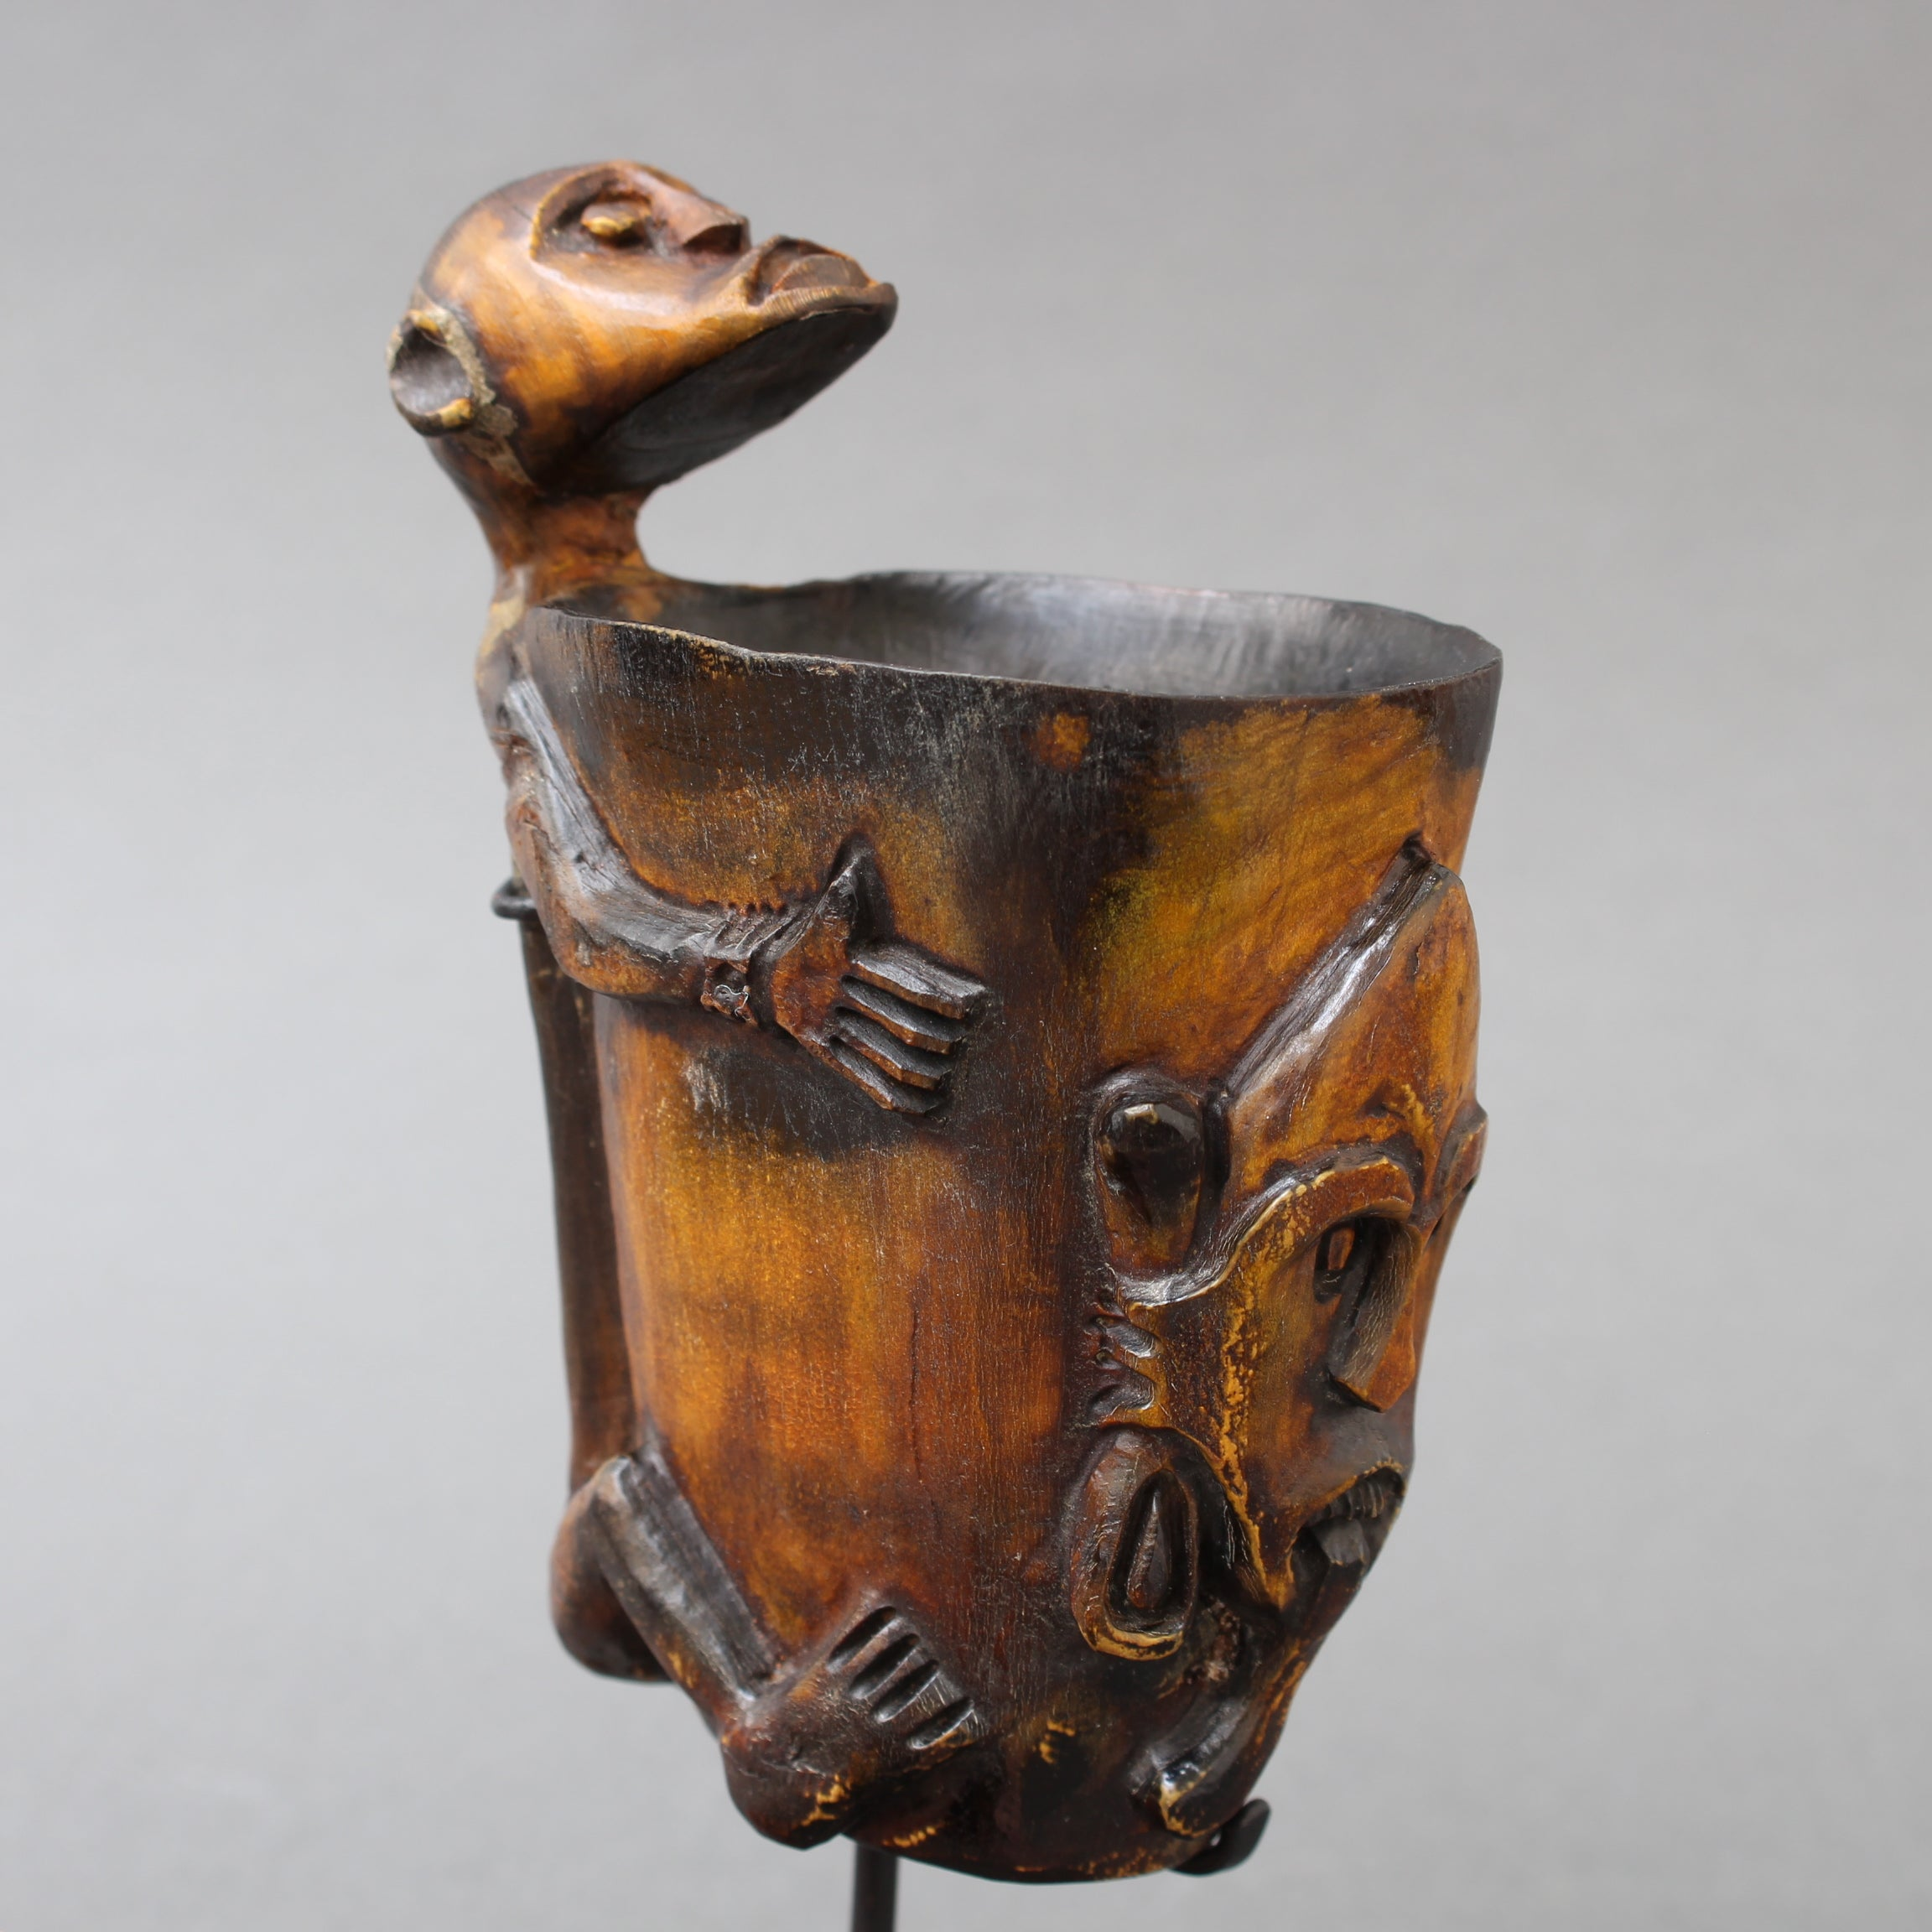 Carved Tattoo Ink Pot from Timor Island, Indonesia (circa 1940s-50s)